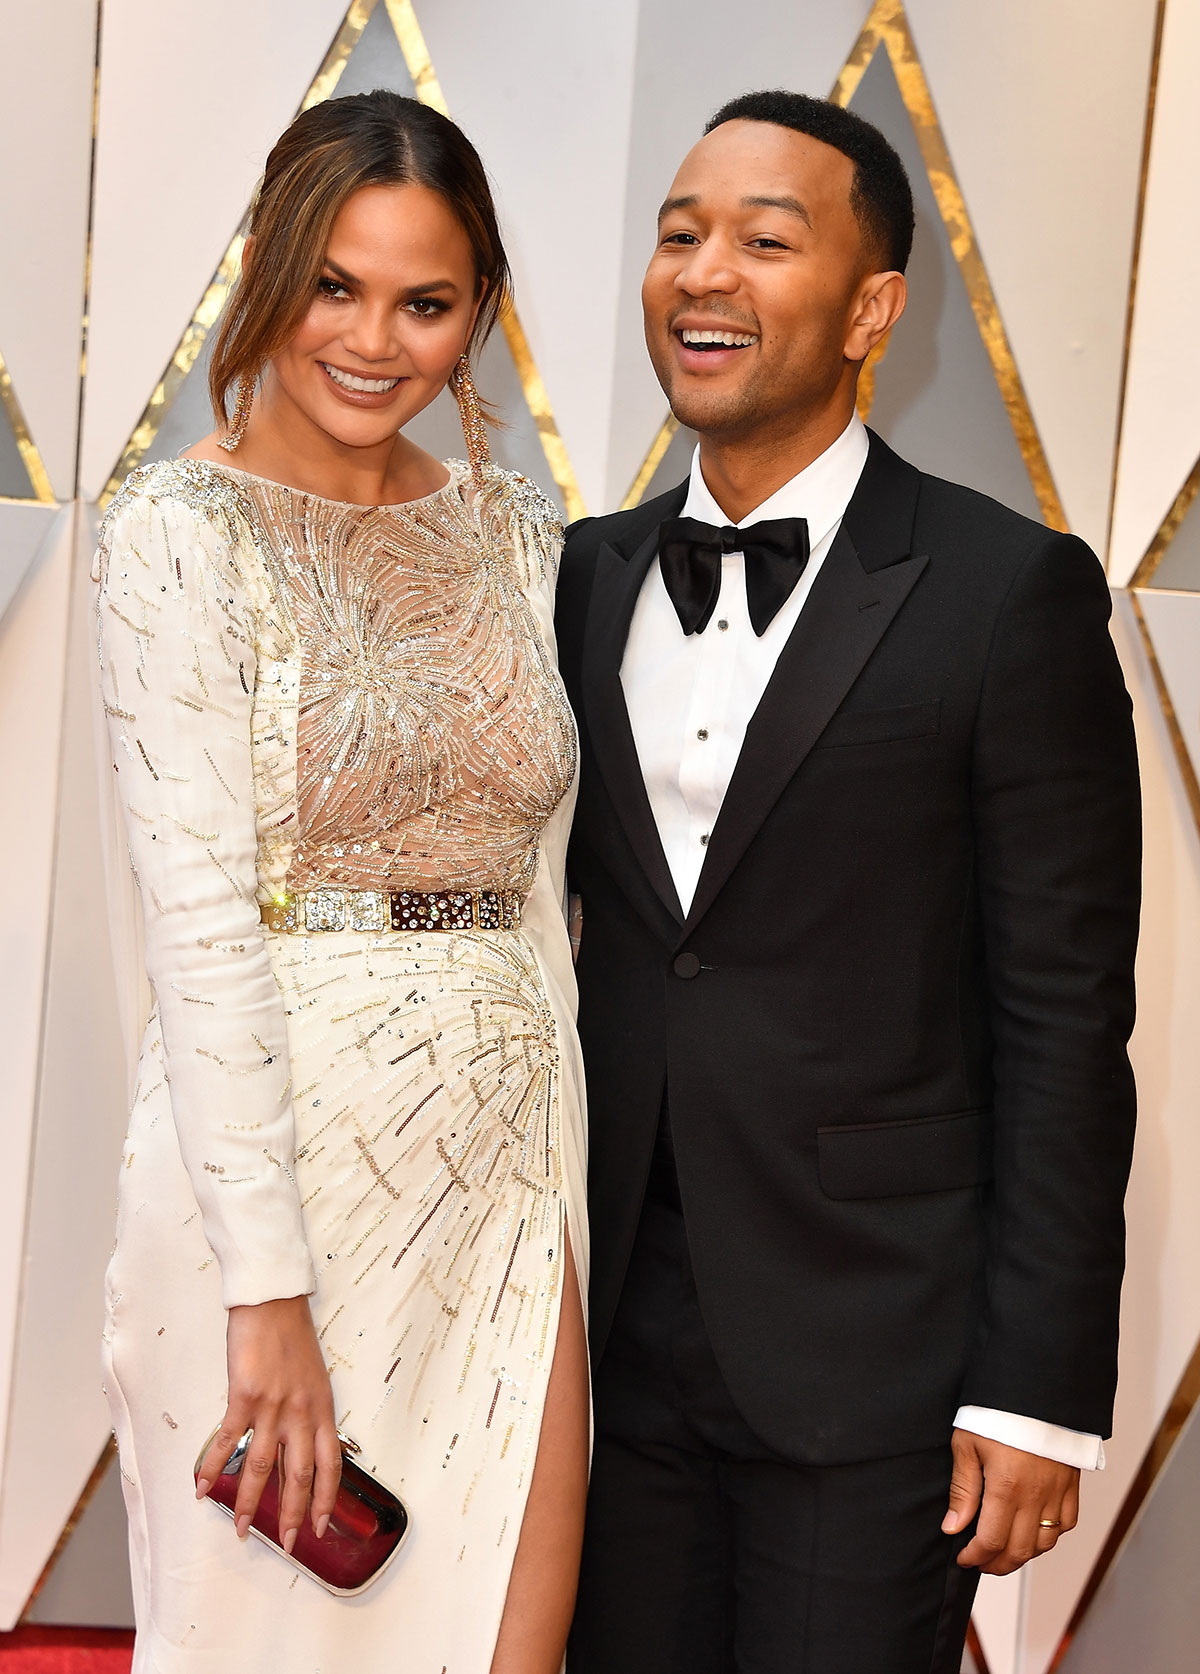 Chrissy Teigen and John Legend at the Oscars 2017